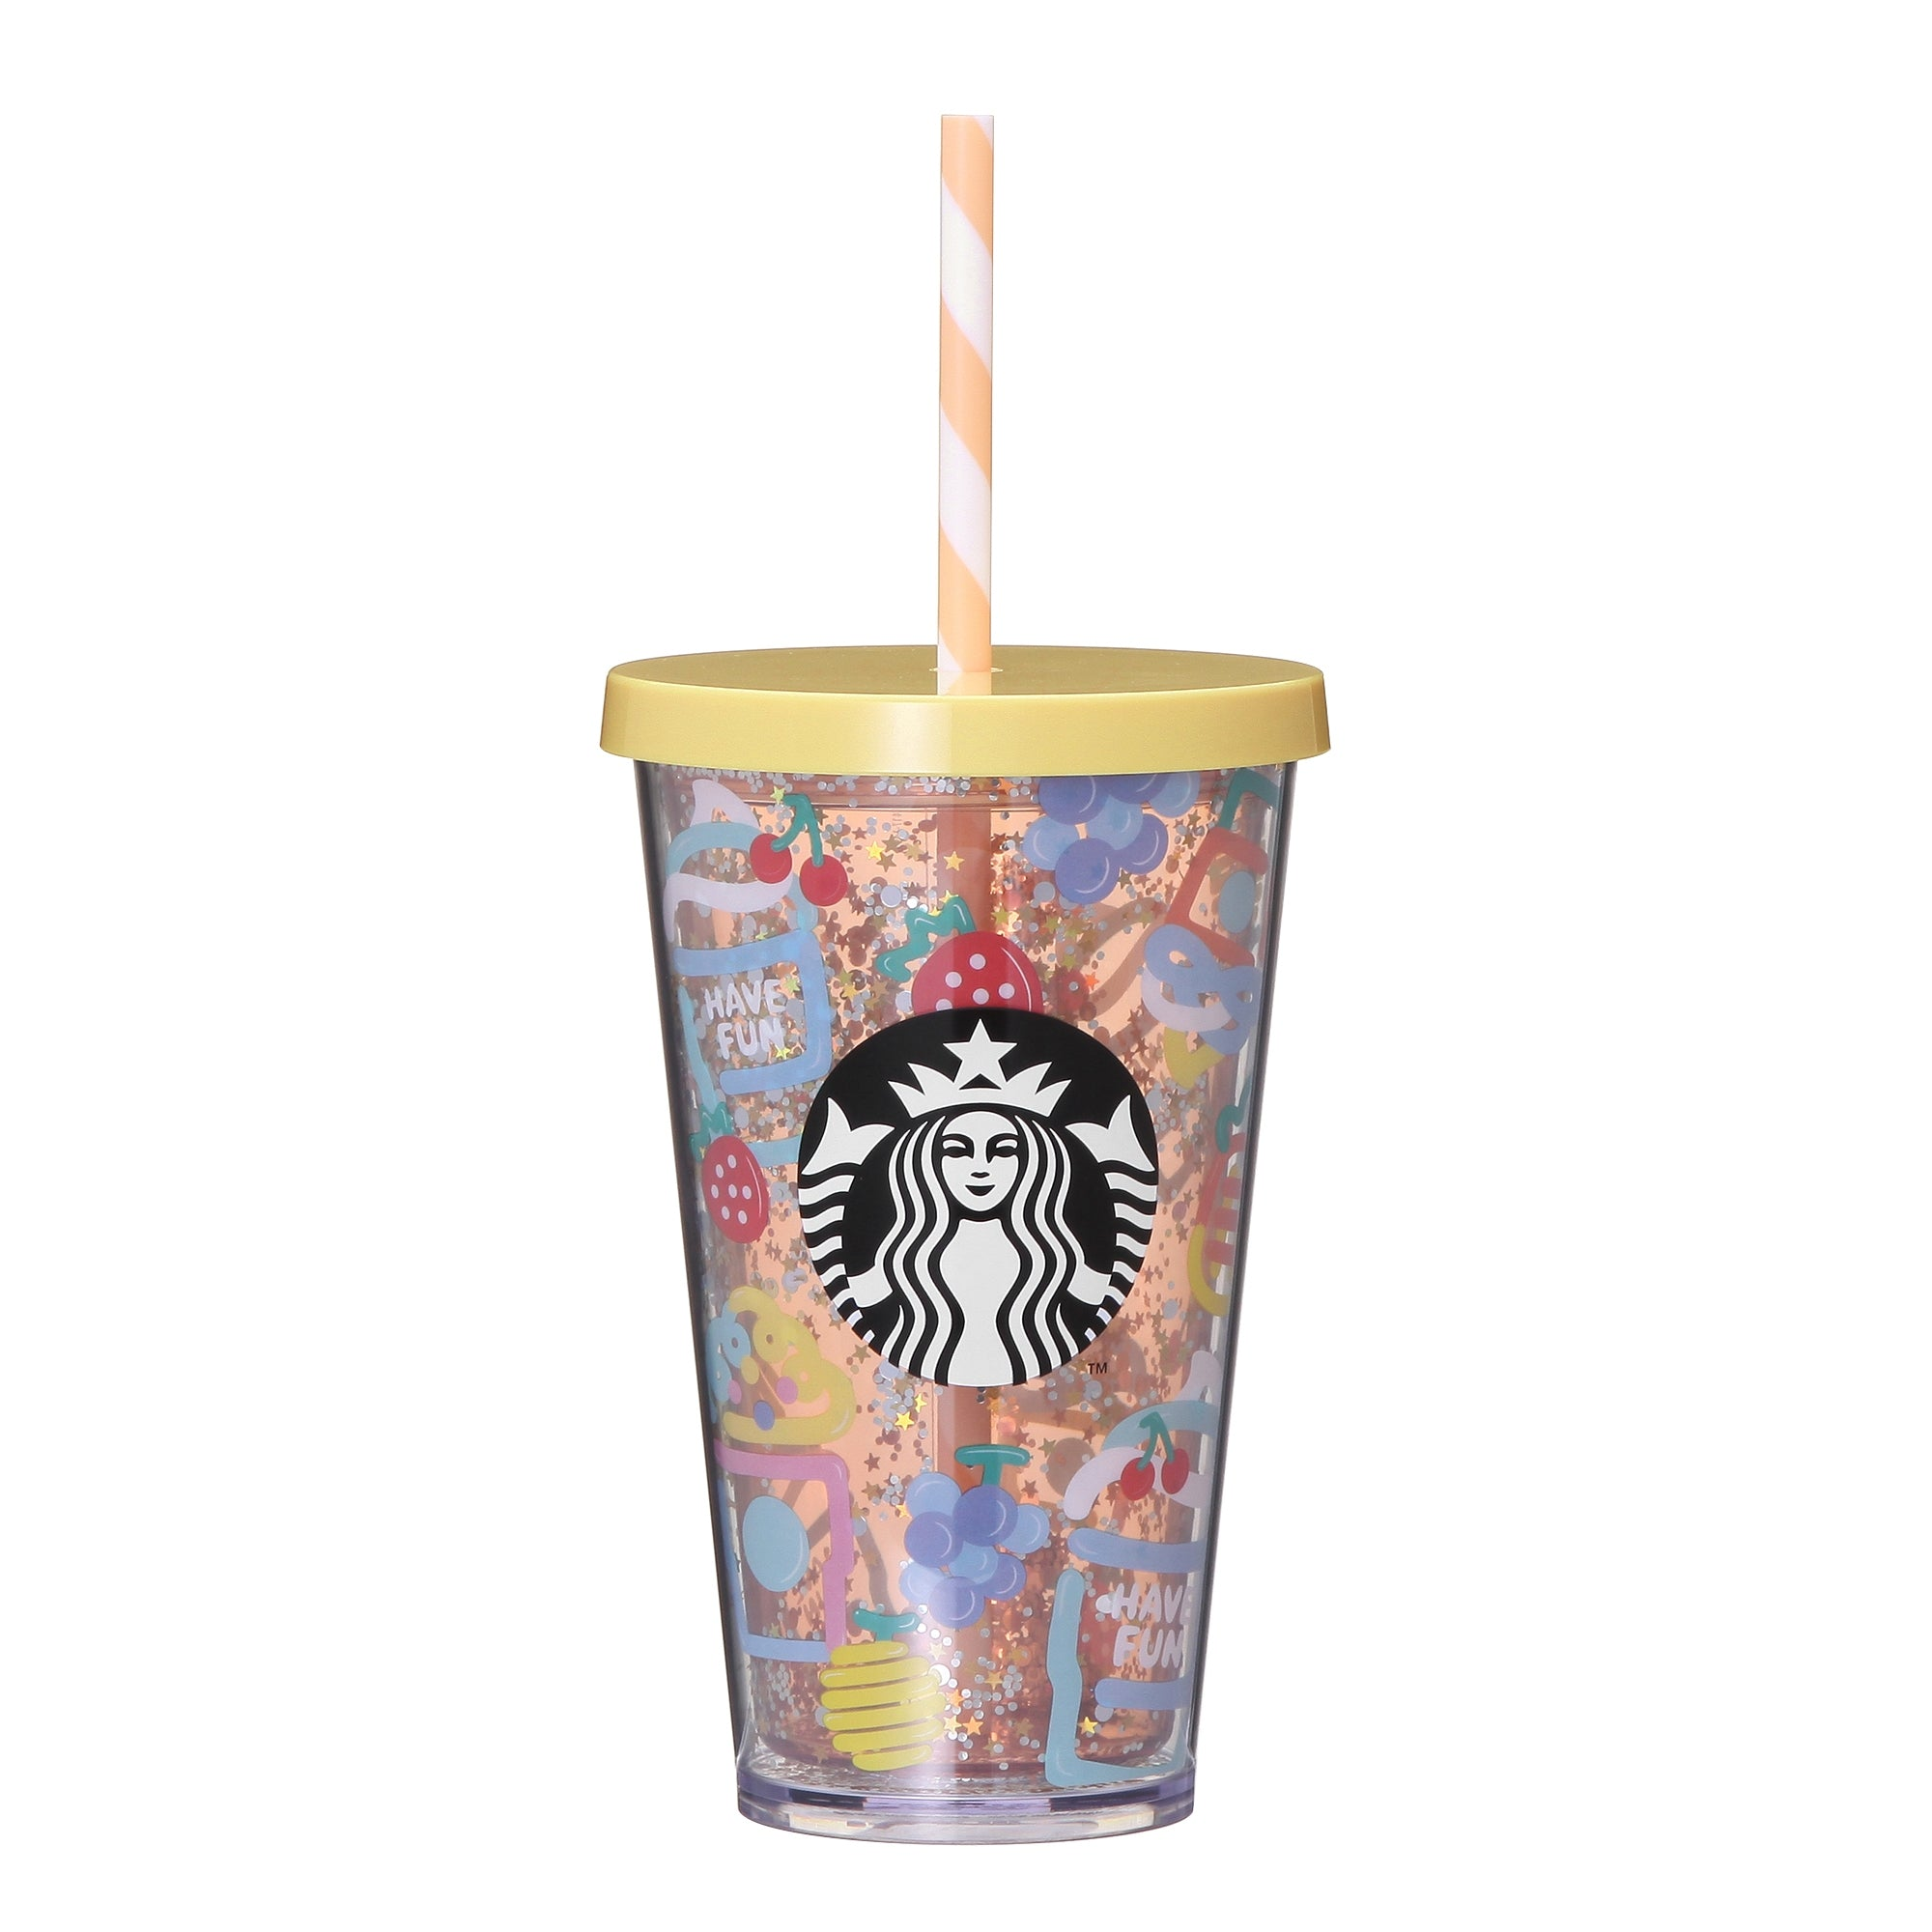 Cold Cup Straw Tumbler Frappuccino Party 473ml Starbucks Japan